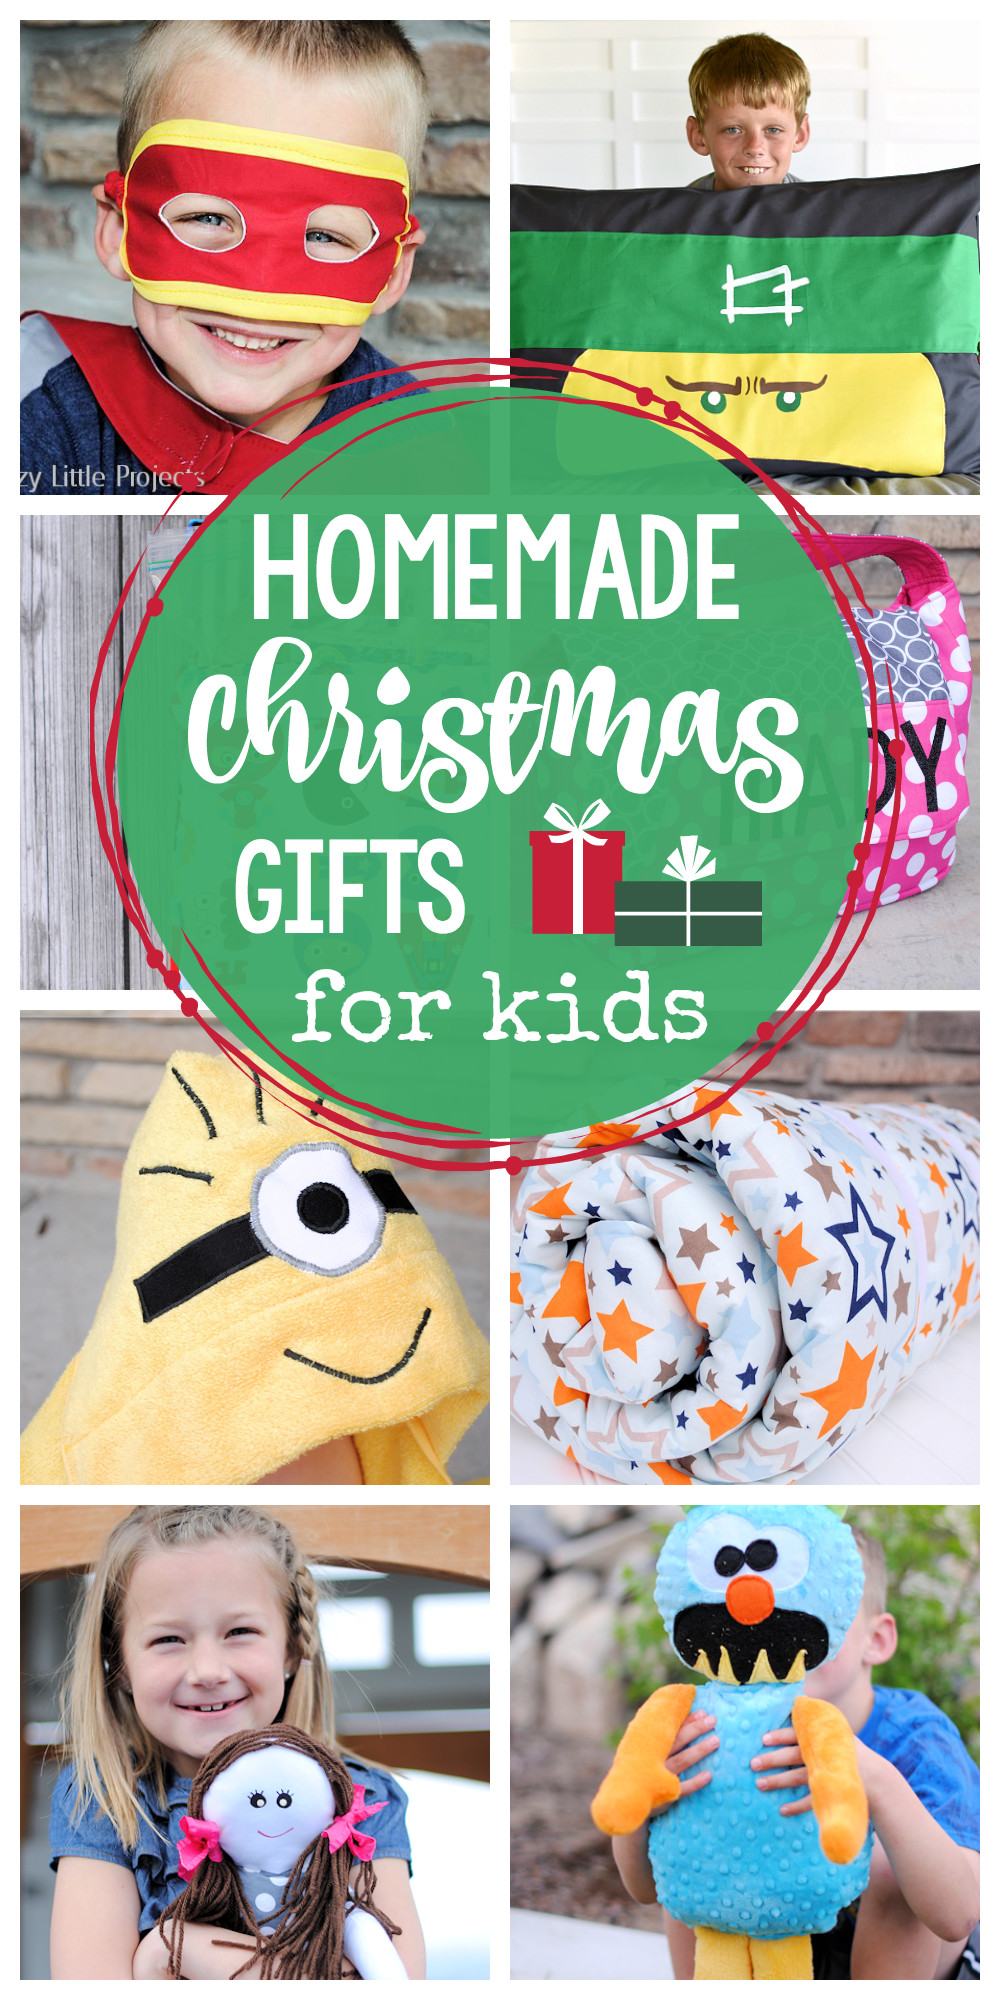 Toddler Made Christmas Gifts  25 Homemade Christmas Gifts for Kids Crazy Little Projects